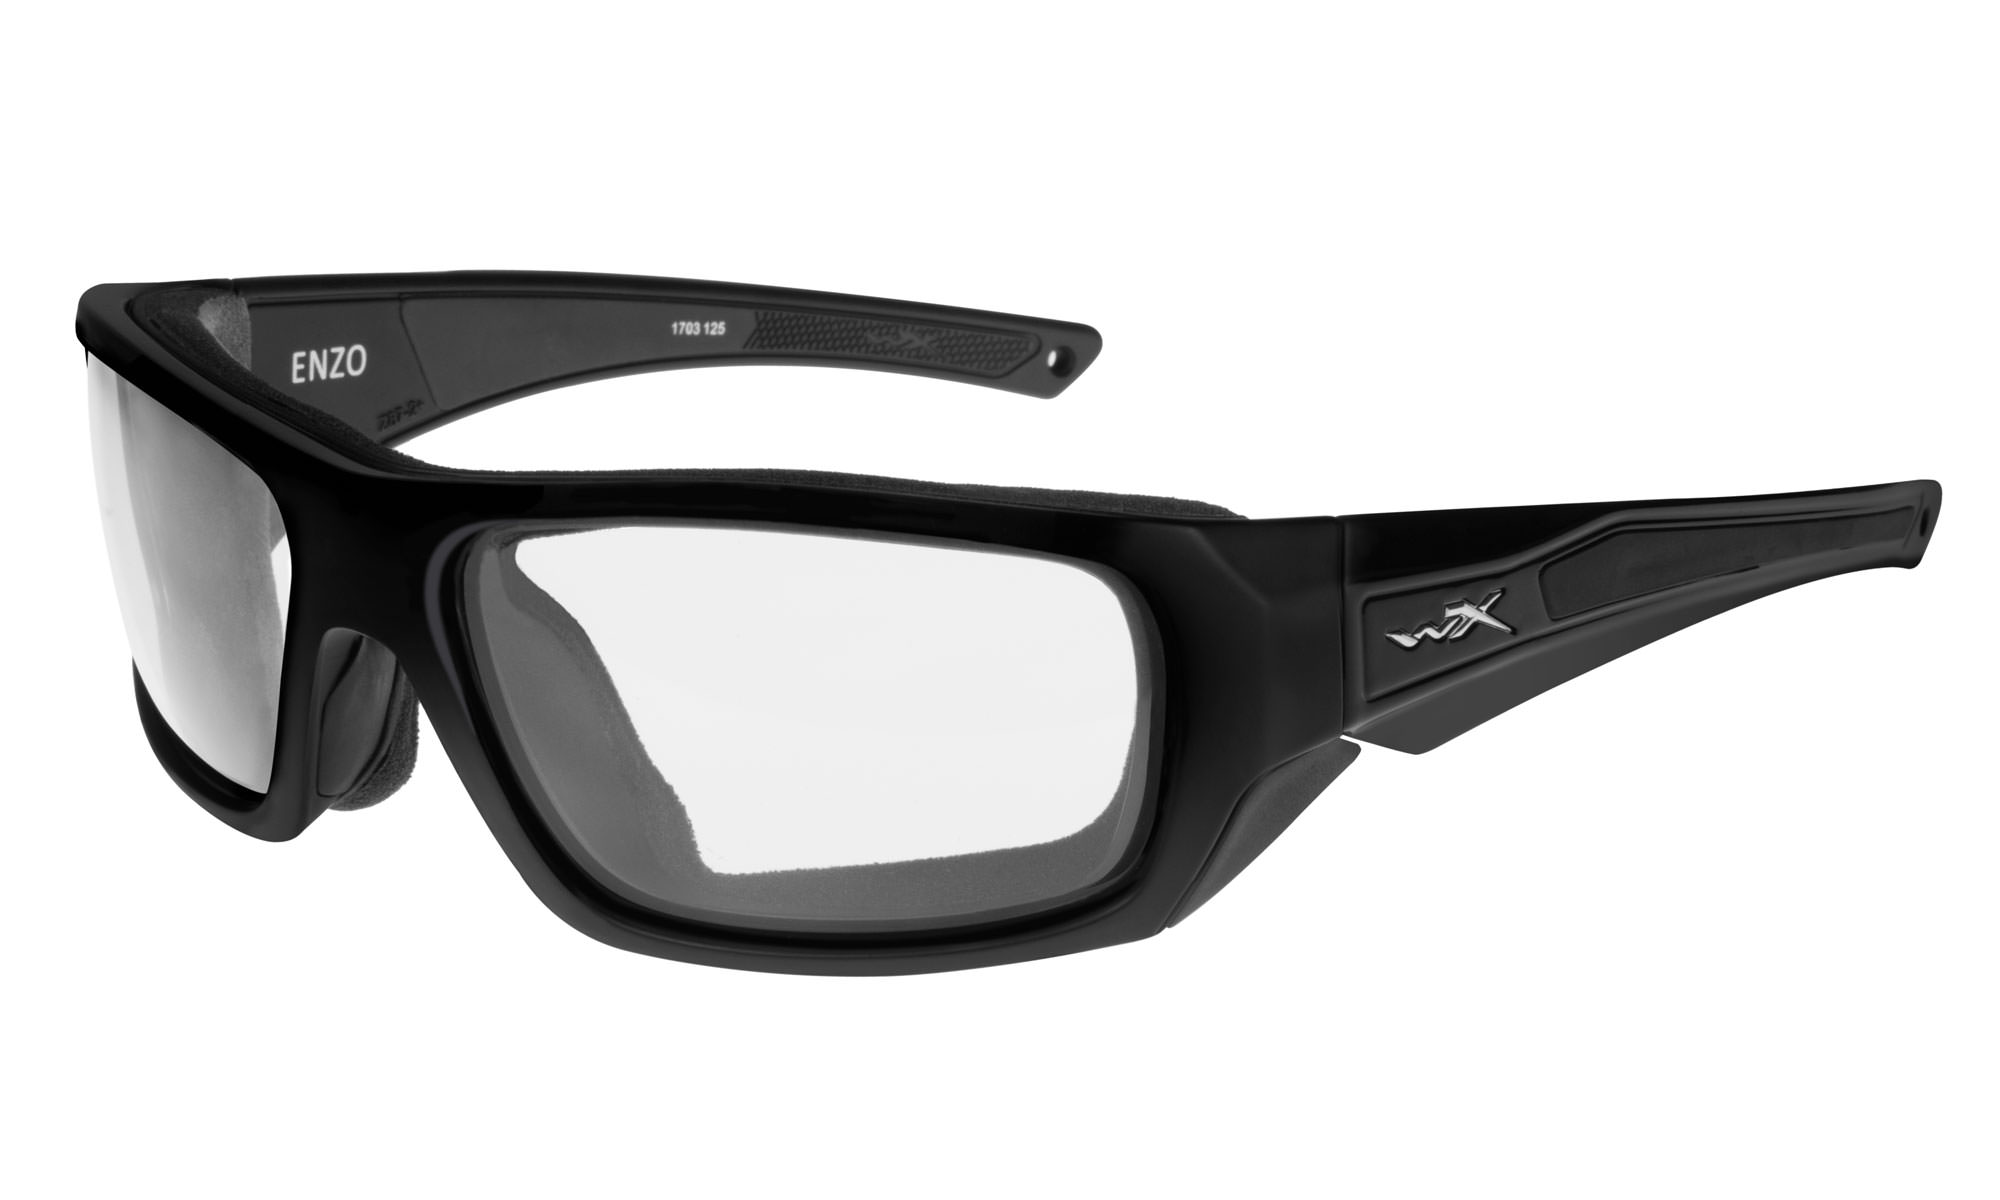 486f4f57aba4 Wiley-X WX Enzo Matte Black with Clear Lenses | Wiley X